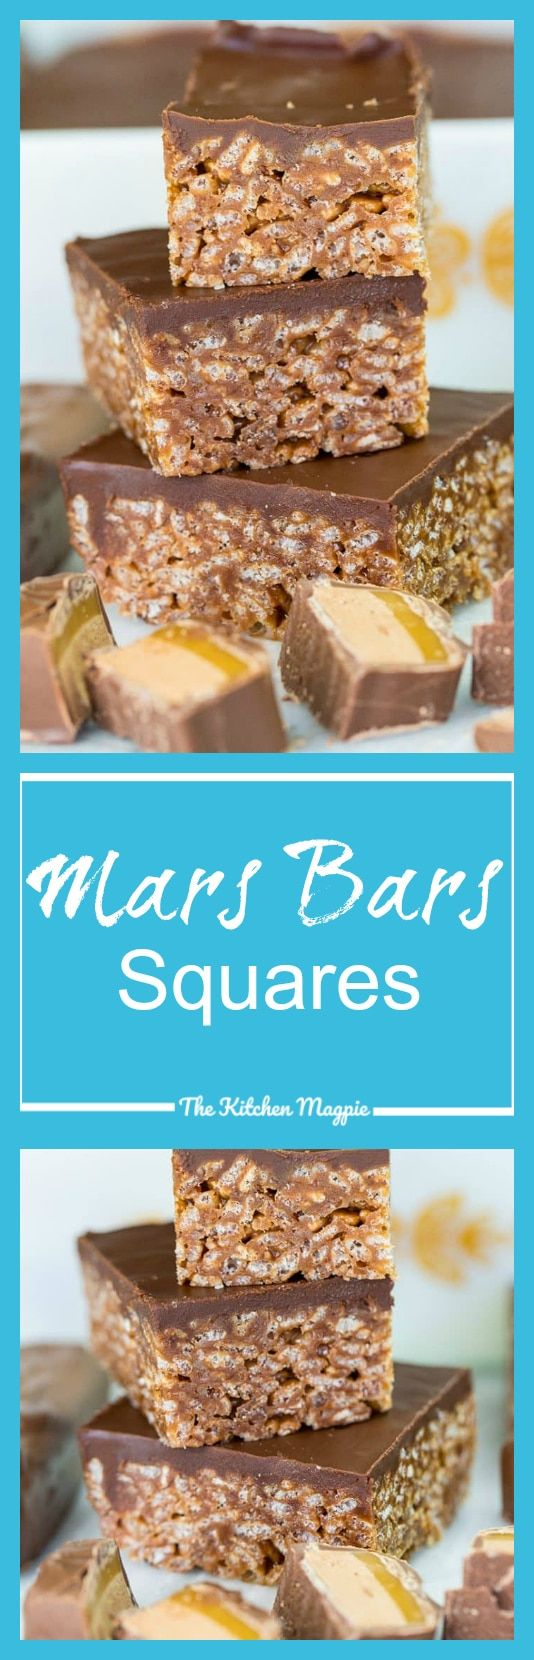 Mars Bars Squares - The Kitchen Magpie